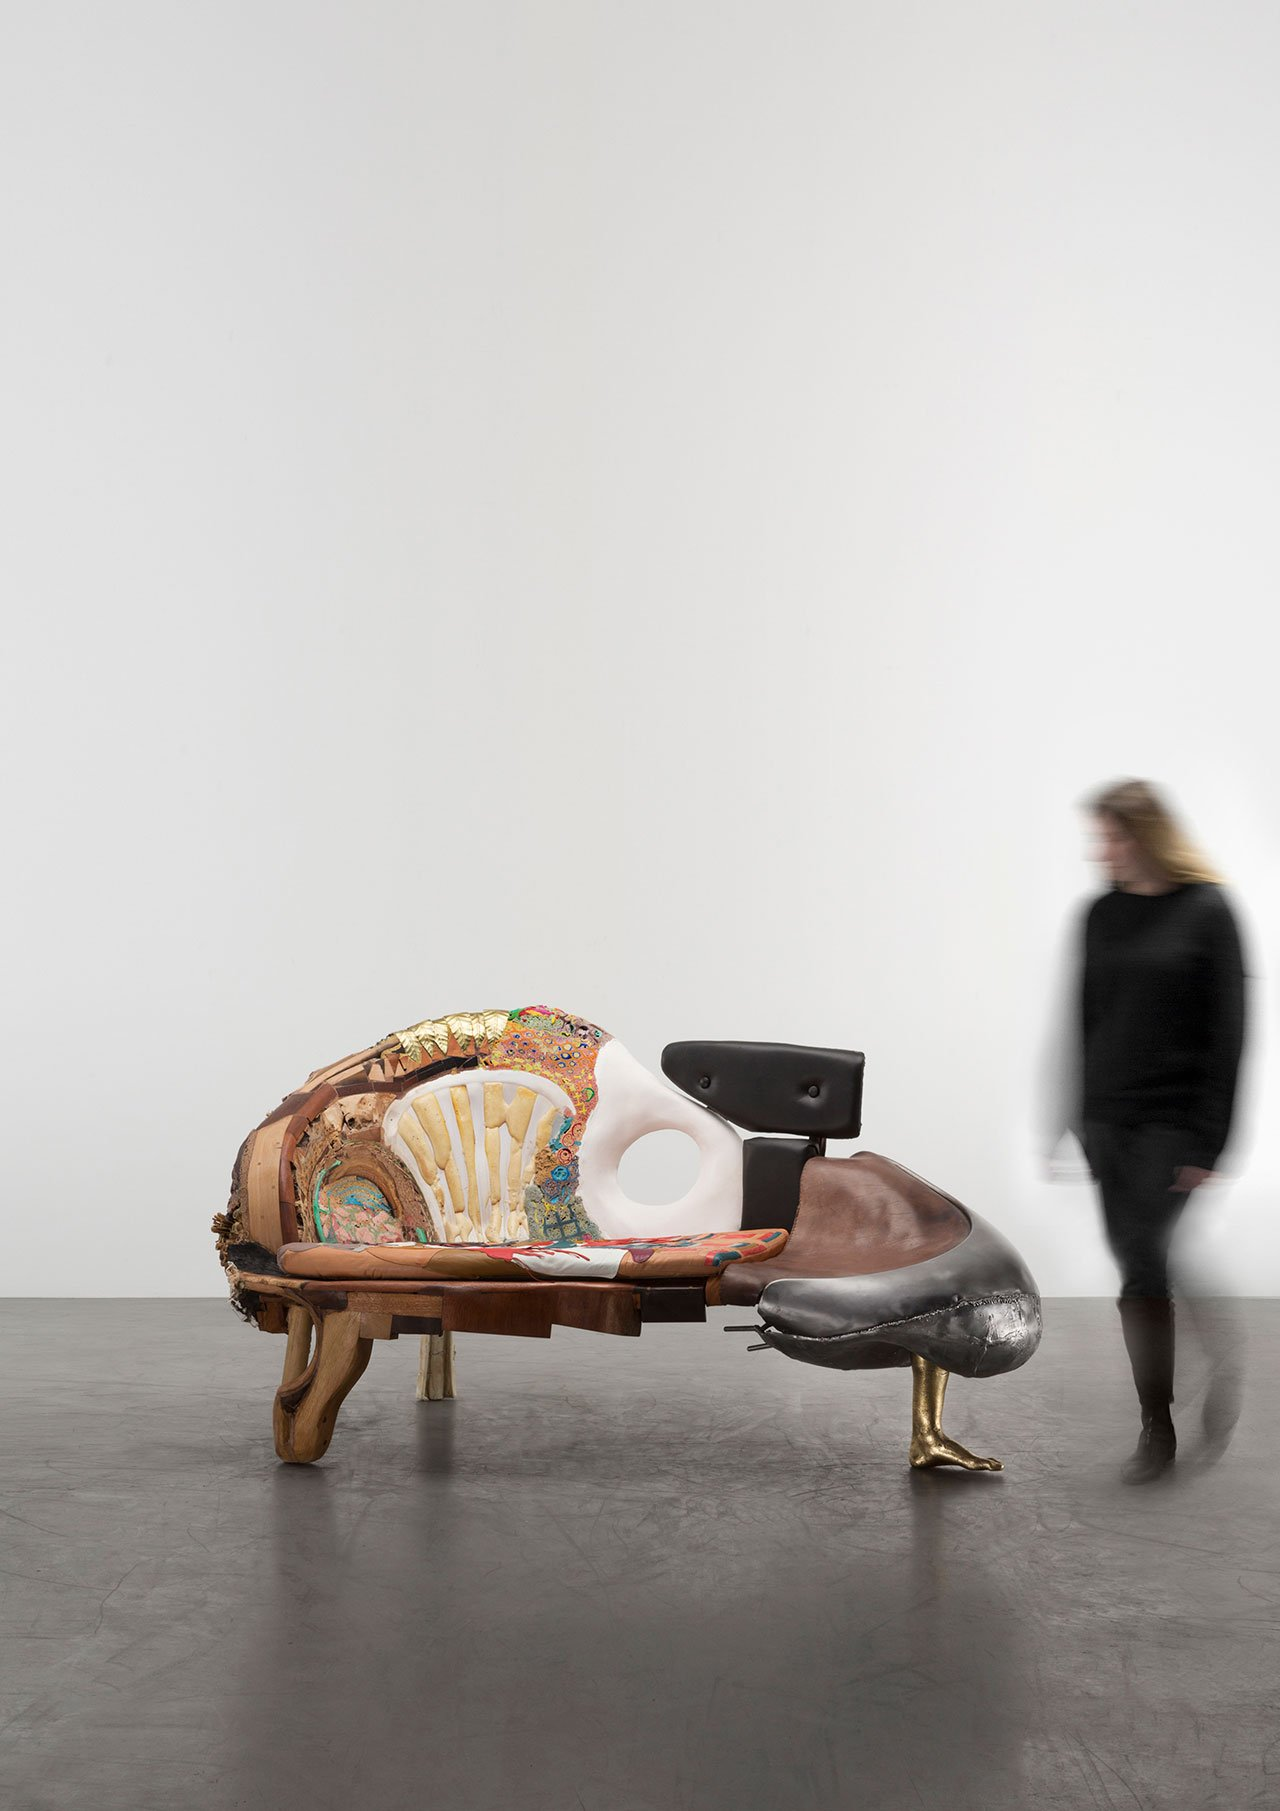 Kostas Lambridis, Elemental Daybed. Photo courtesy Carpenters Workshop Gallery.